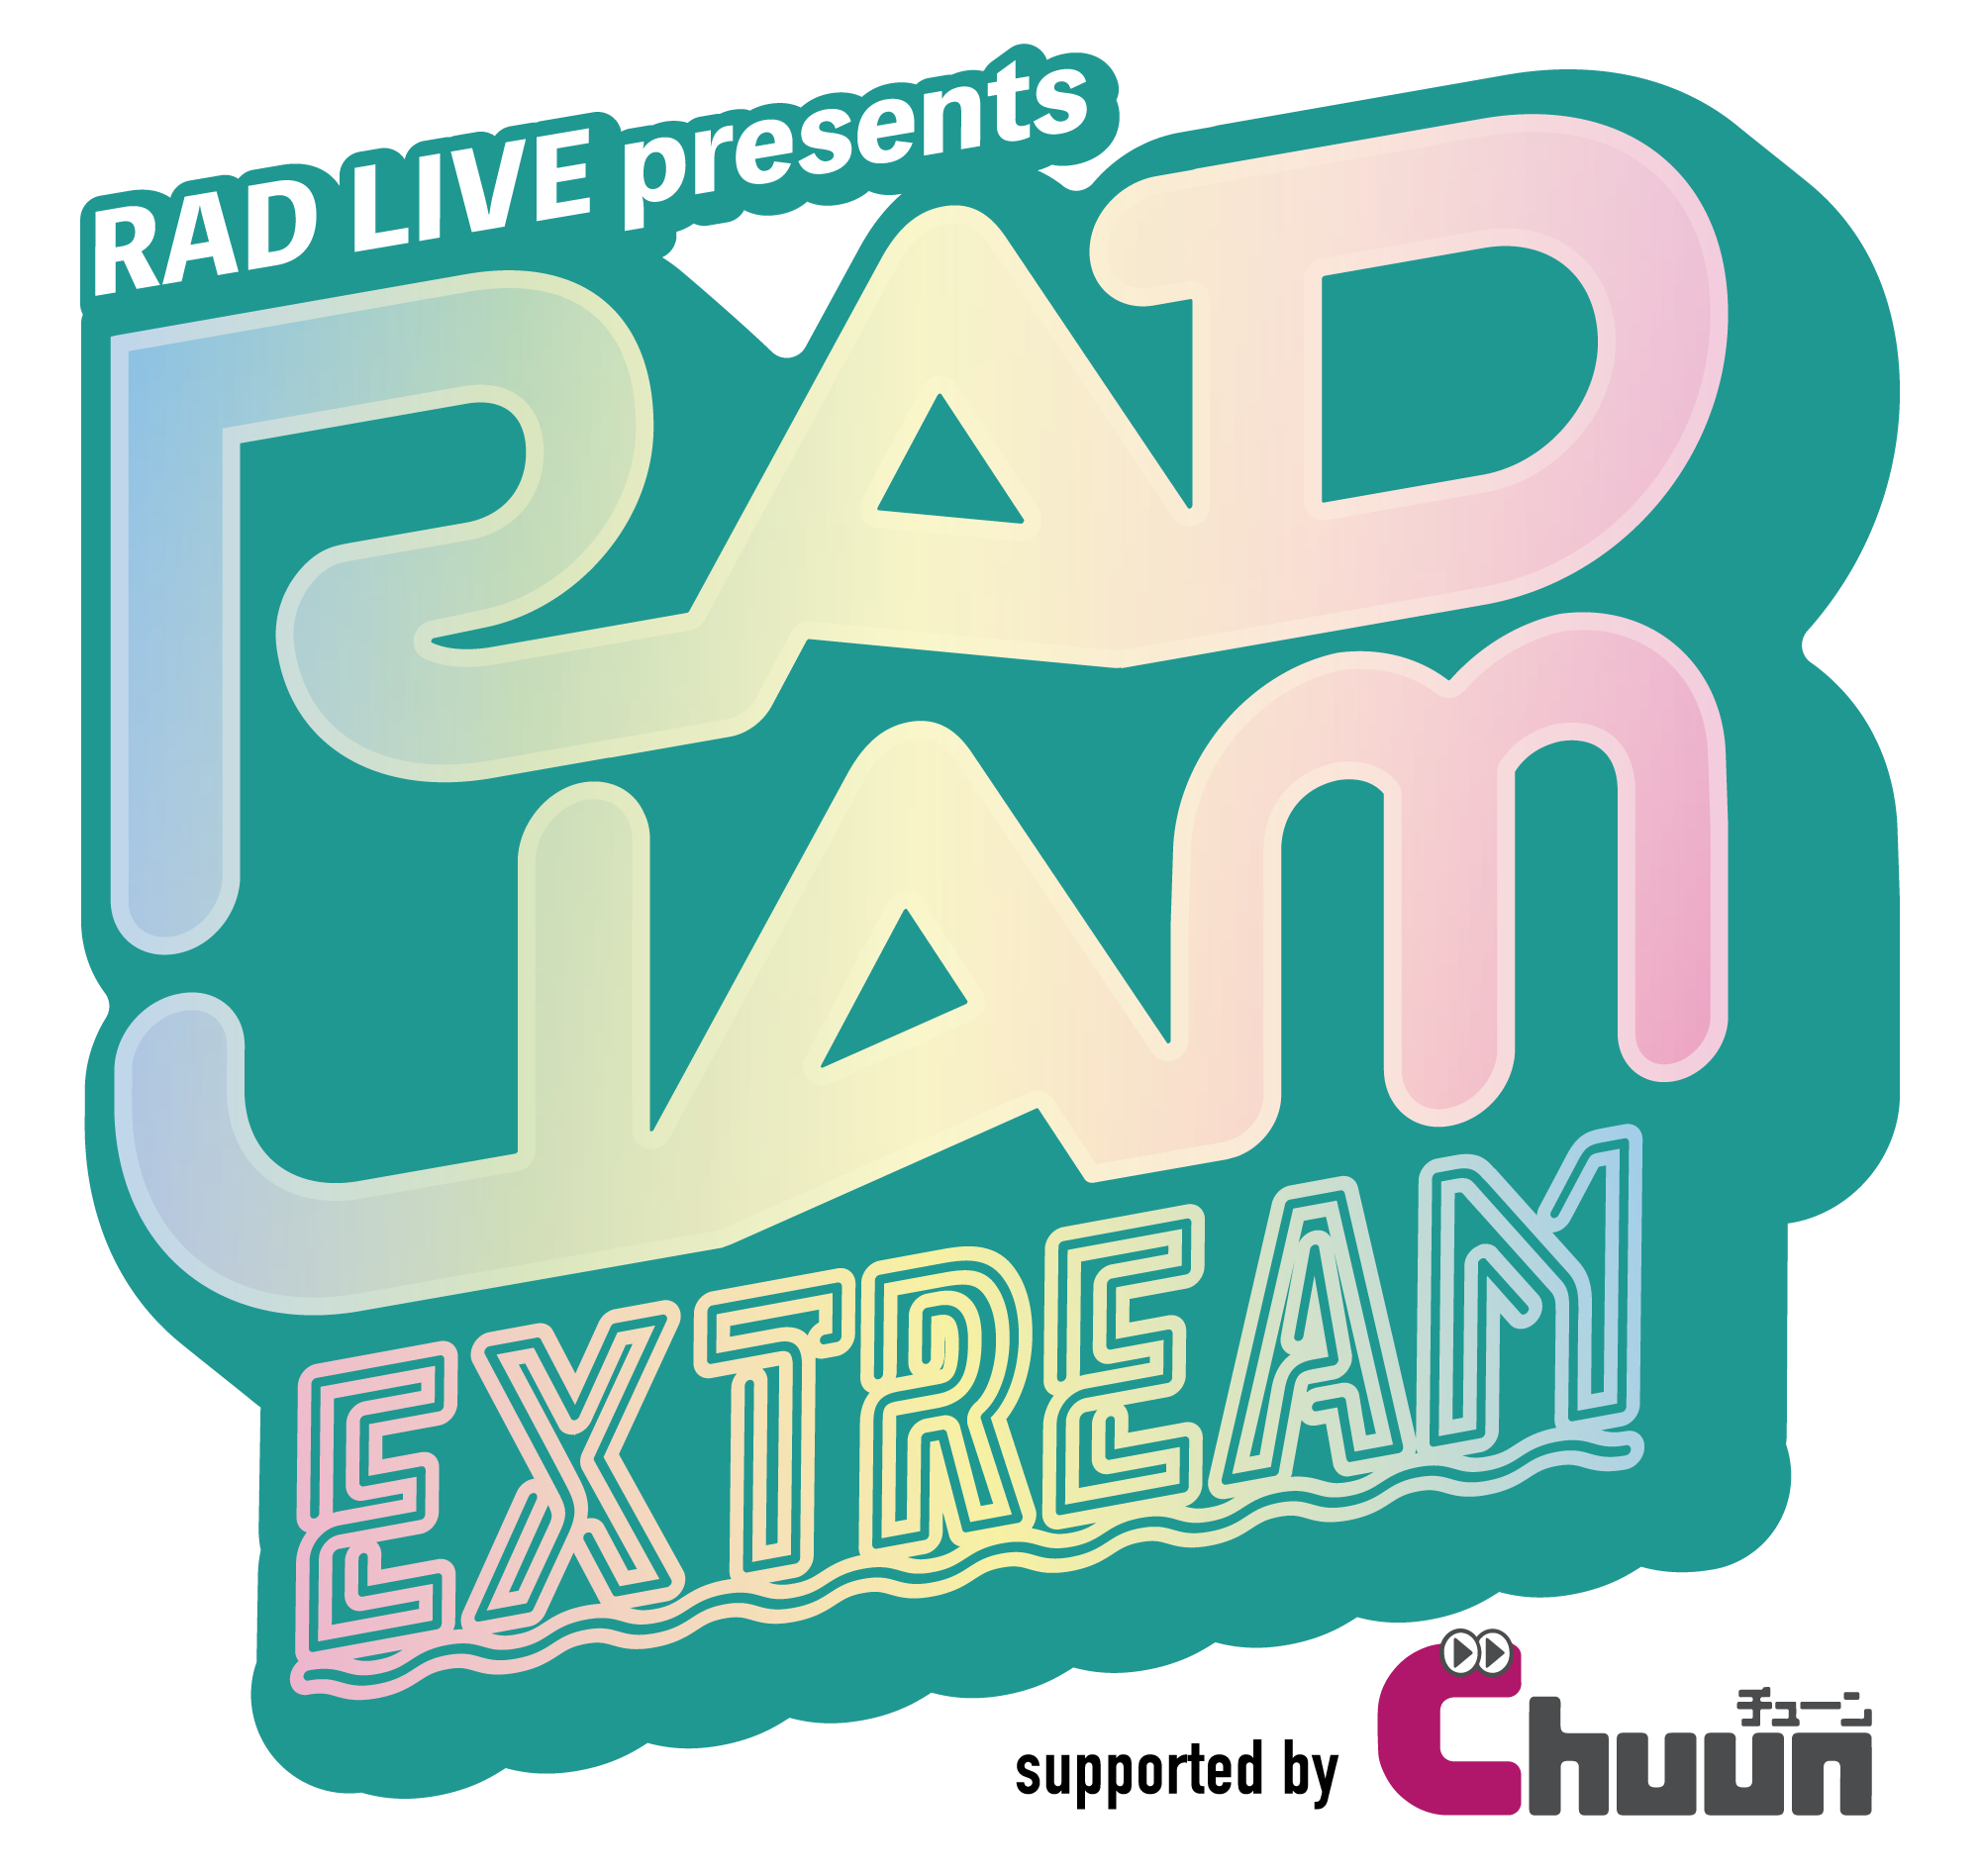 RAD JAM EXTREAM supported by Chuun